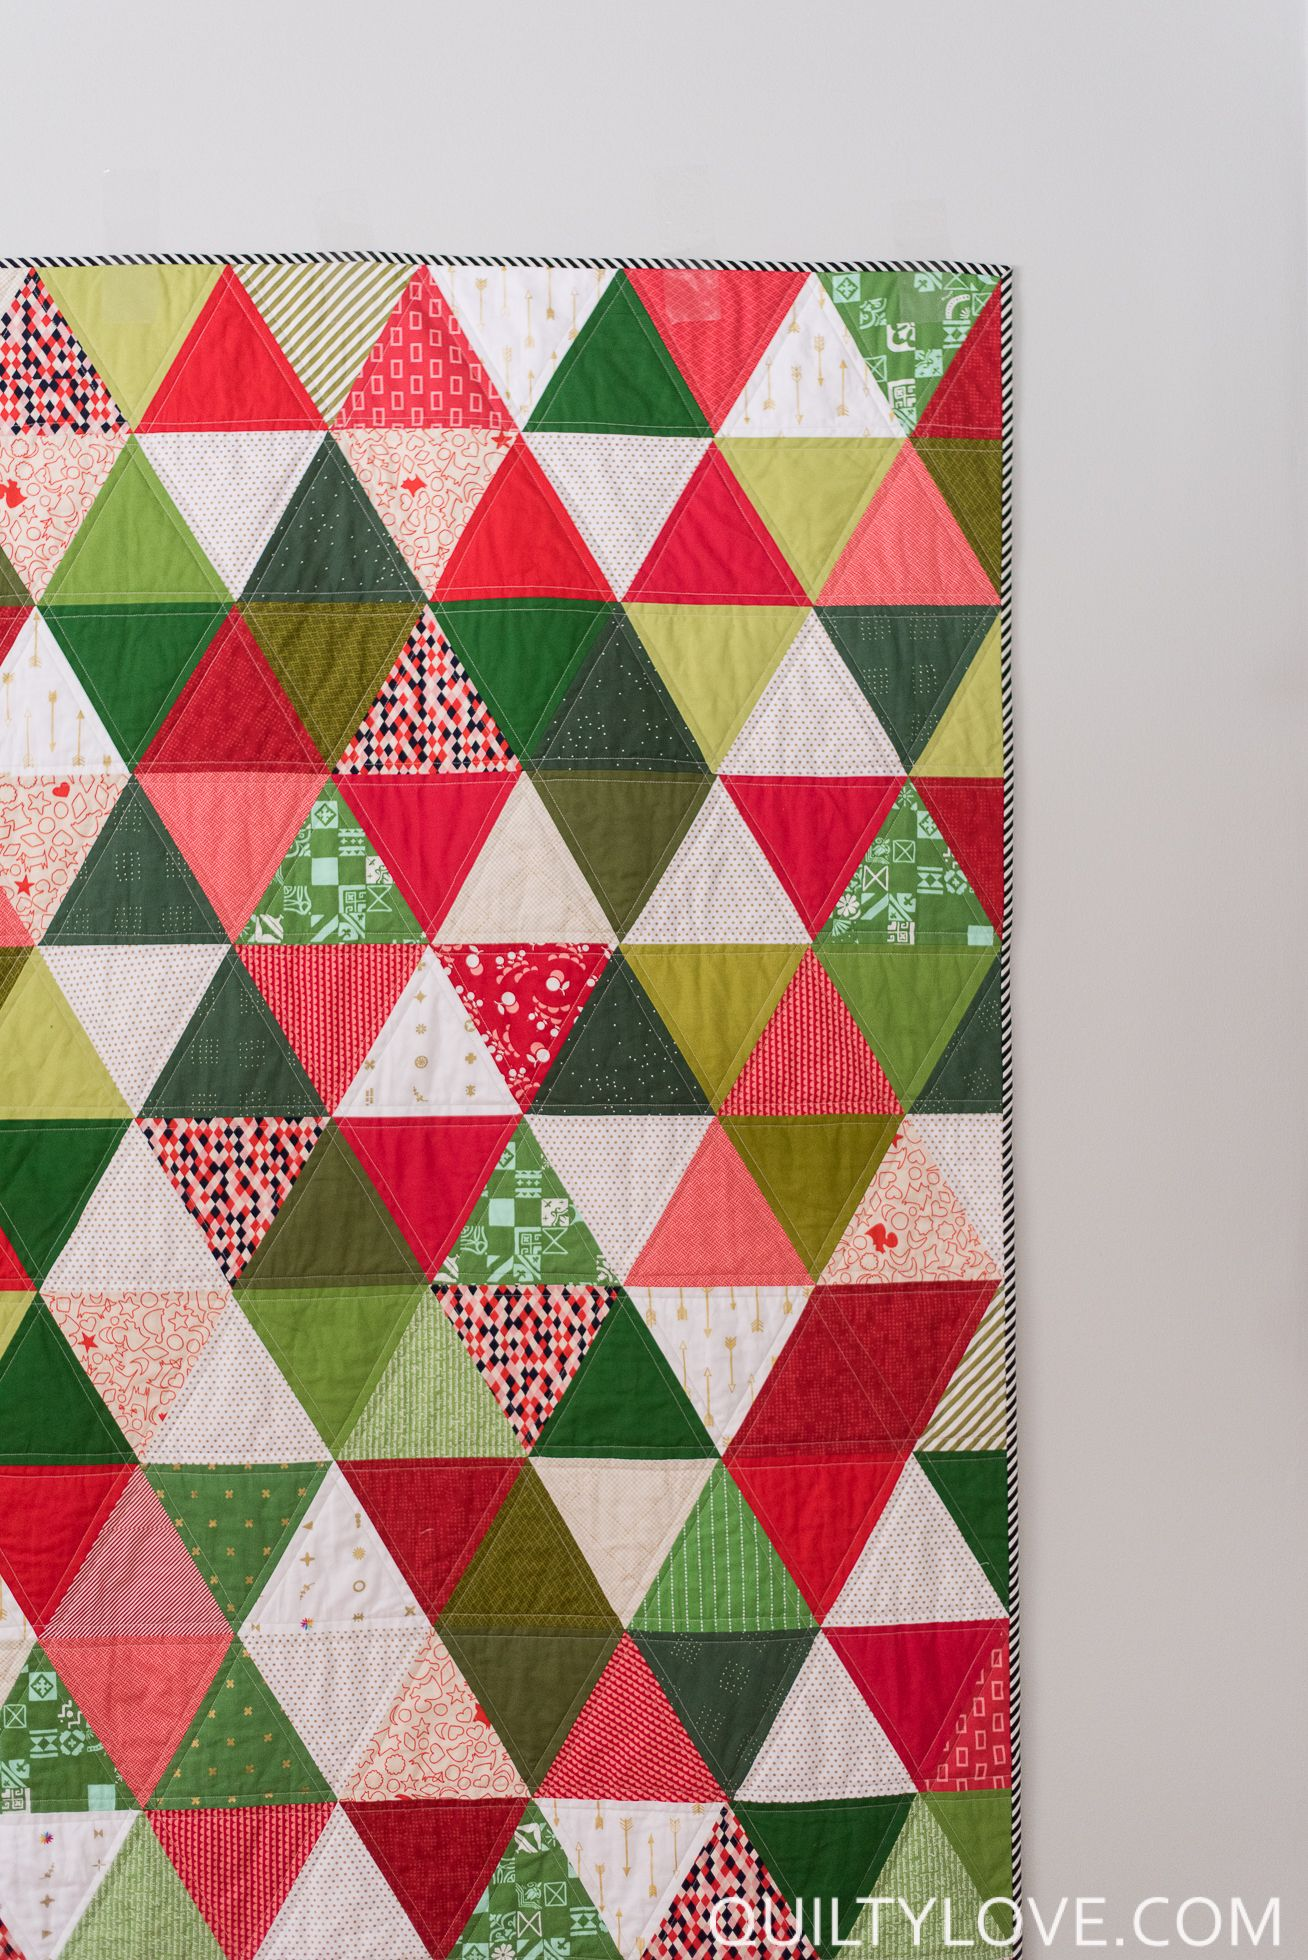 Scrappy Triangle Quilt The Christmas One Quilty Love In 2020 Modern Christmas Quilt Triangle Quilt Christmas Quilt Patterns